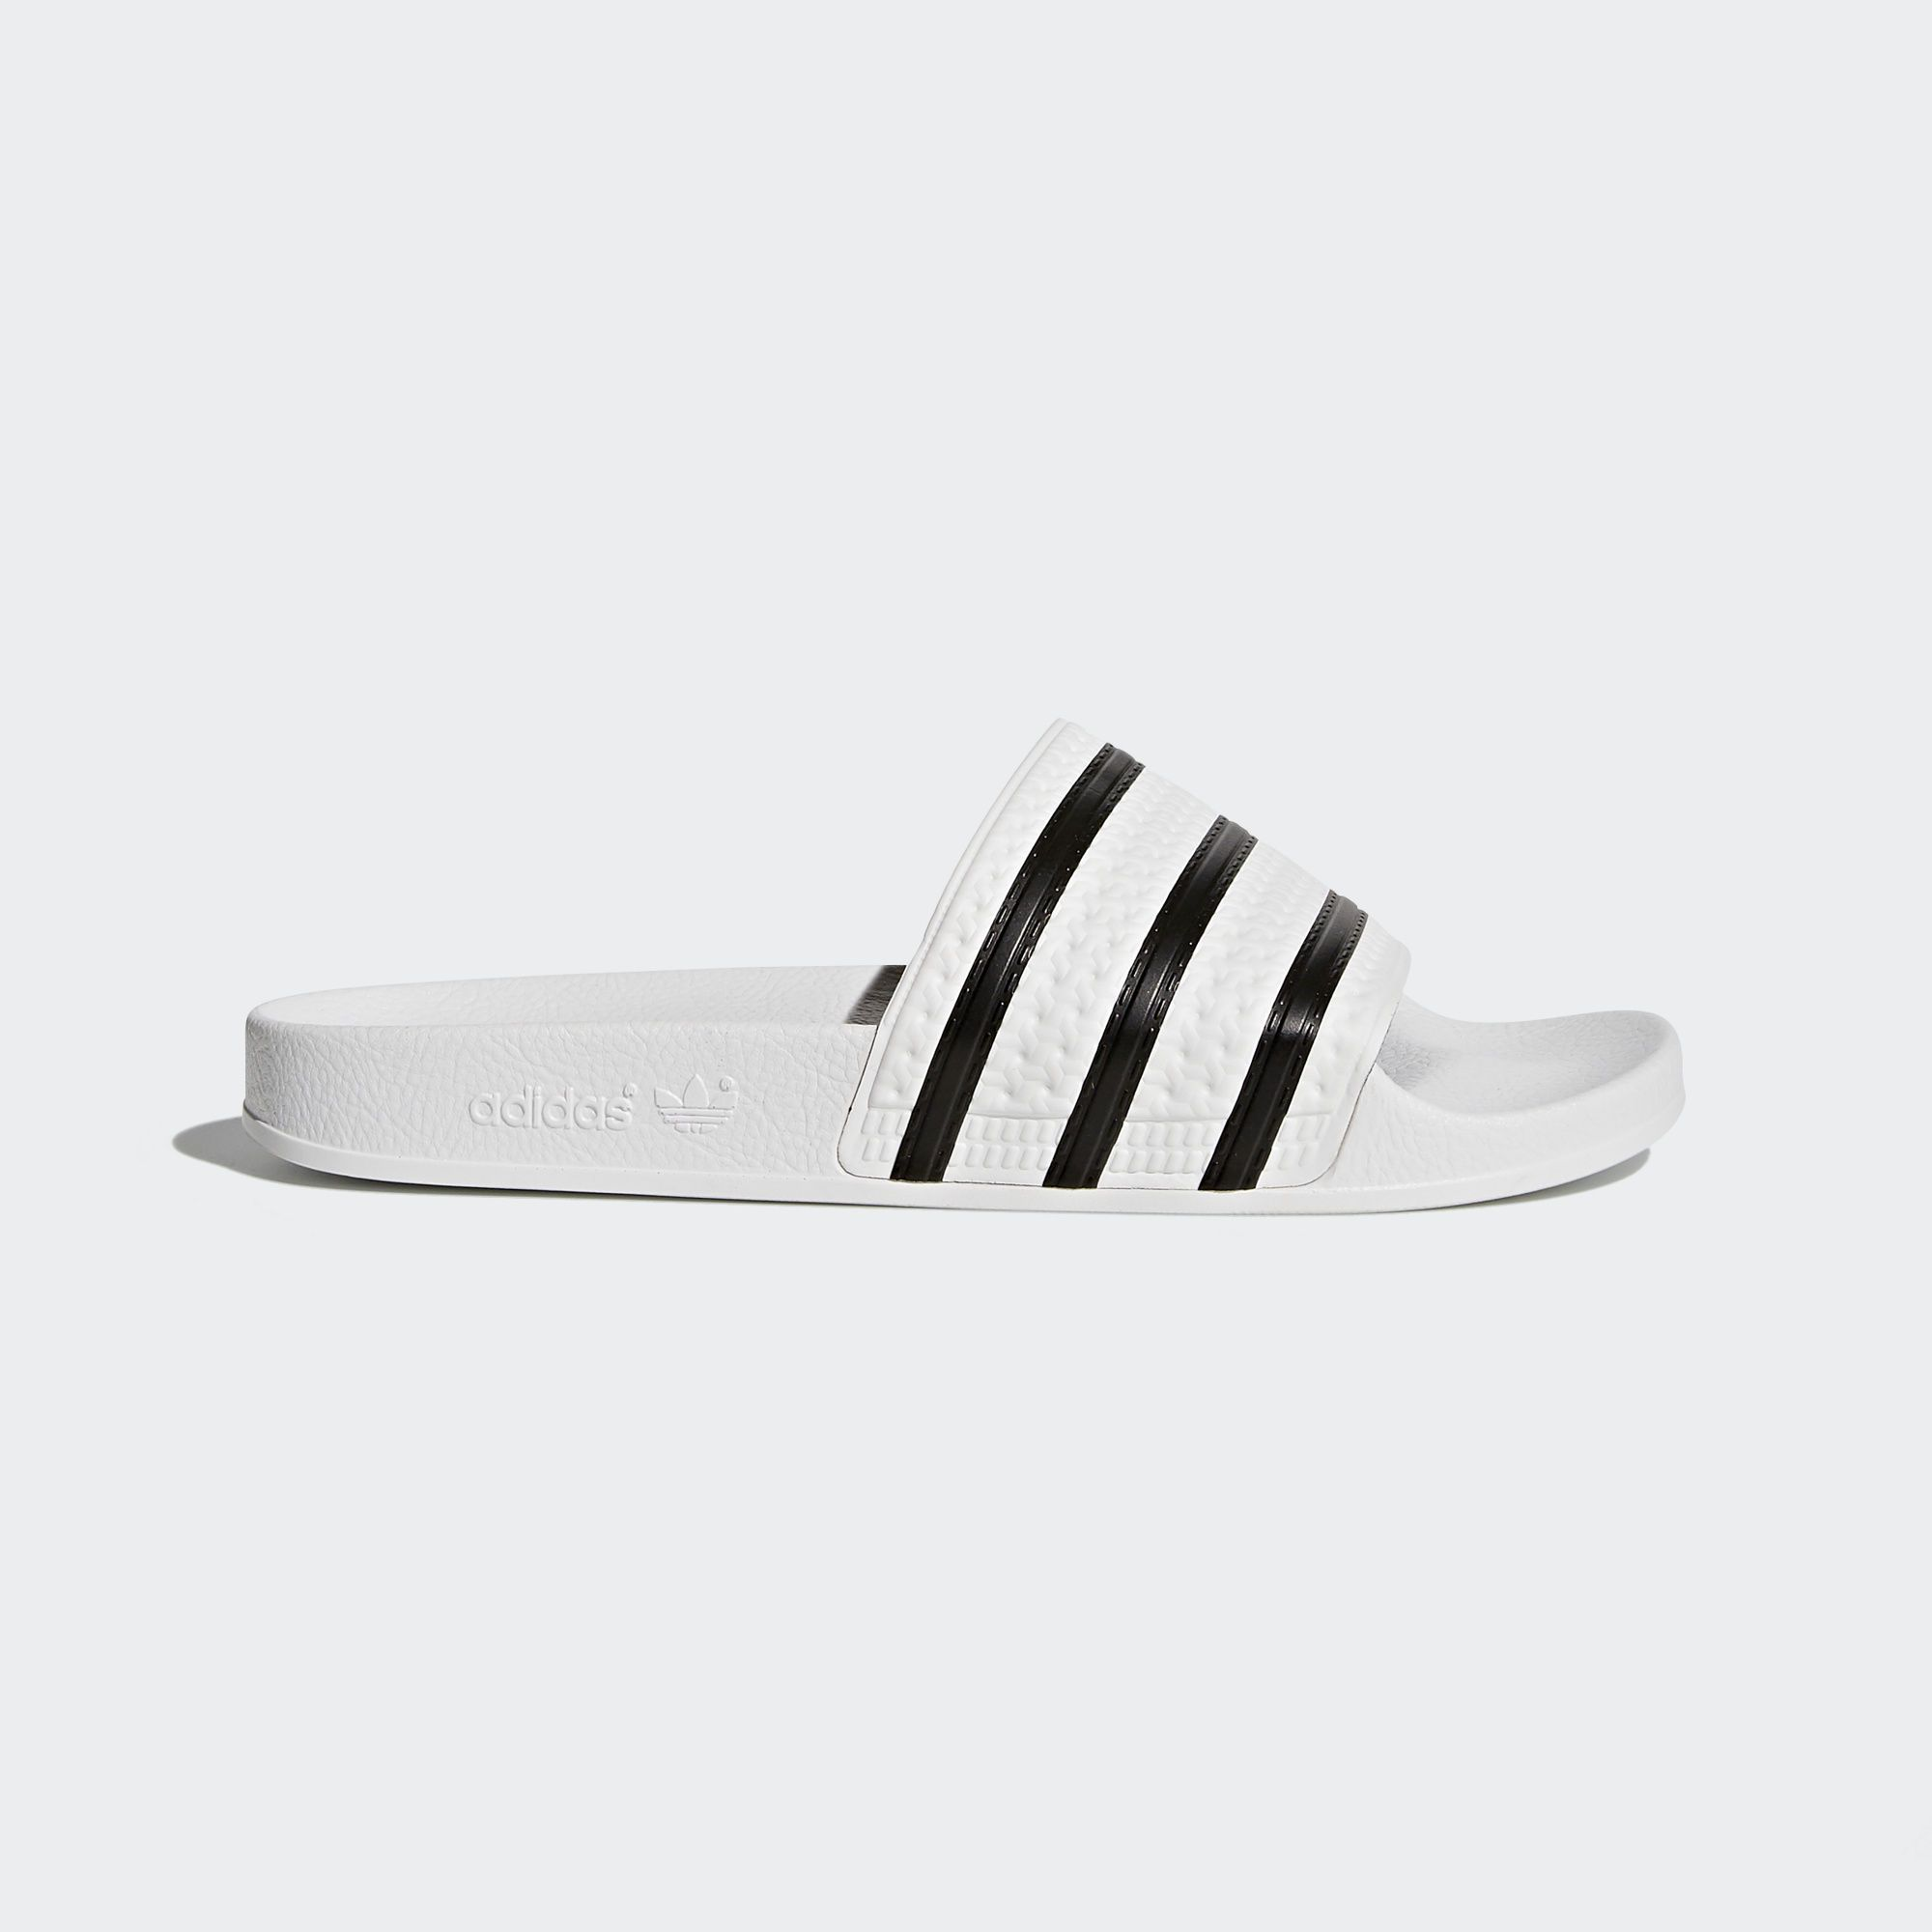 new styles 3f189 ccbf4 The adilette debuted in 1972 as a poolside slide, and its been a style  mainstay of adidas ever since. These mens slides stay true to the  authentic sporty ...